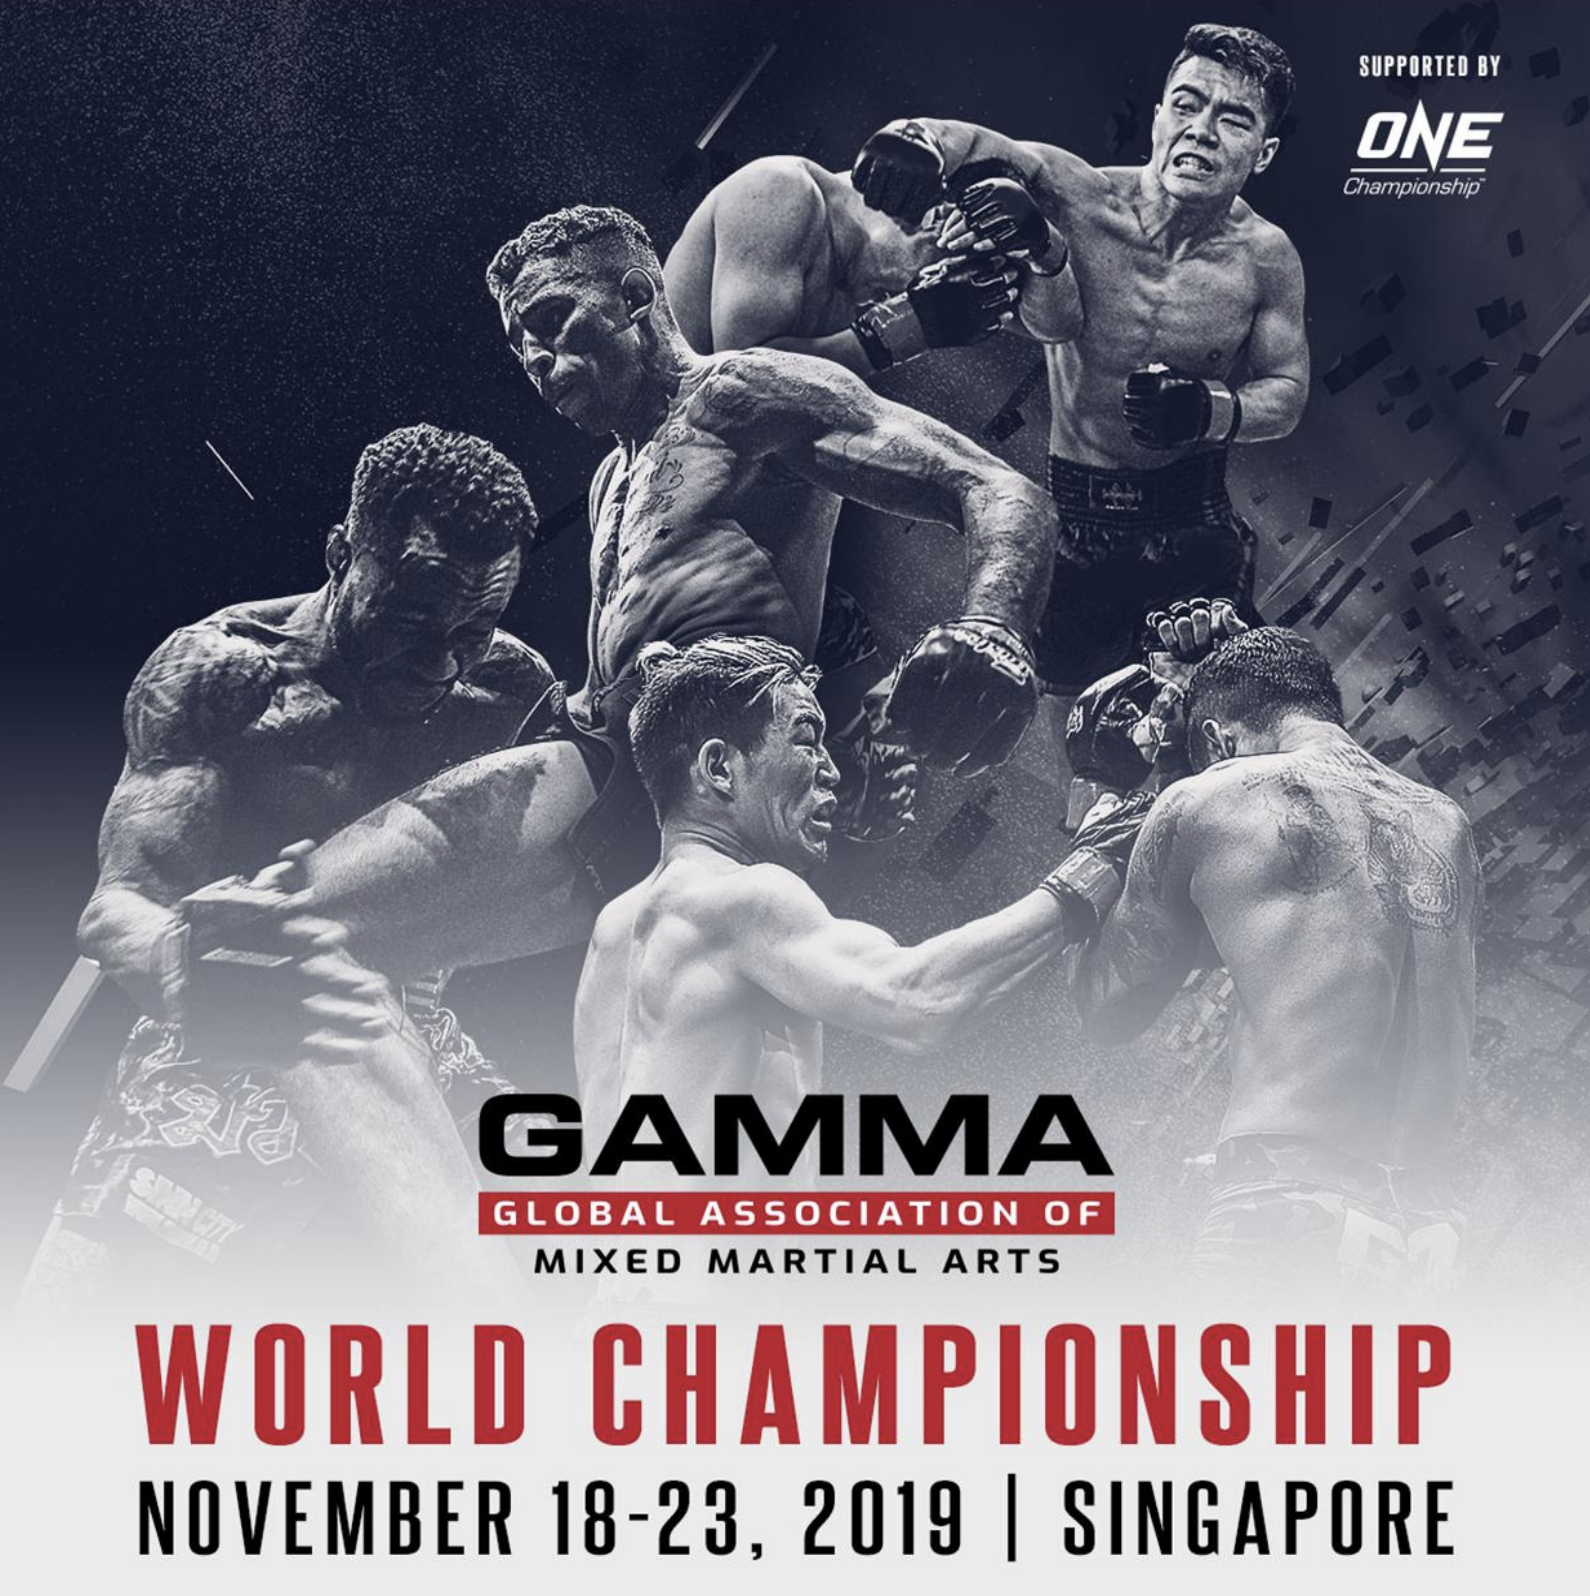 ONE CHAMPIONSHIP AND THE GLOBAL ASSOCIATION OF MIXED MARTIAL ARTS HOST 2019 GAMMA WORLD CHAMPIONSHIP IN SINGAPORE THIS 18-23 NOVEMBER - ONEChampionship